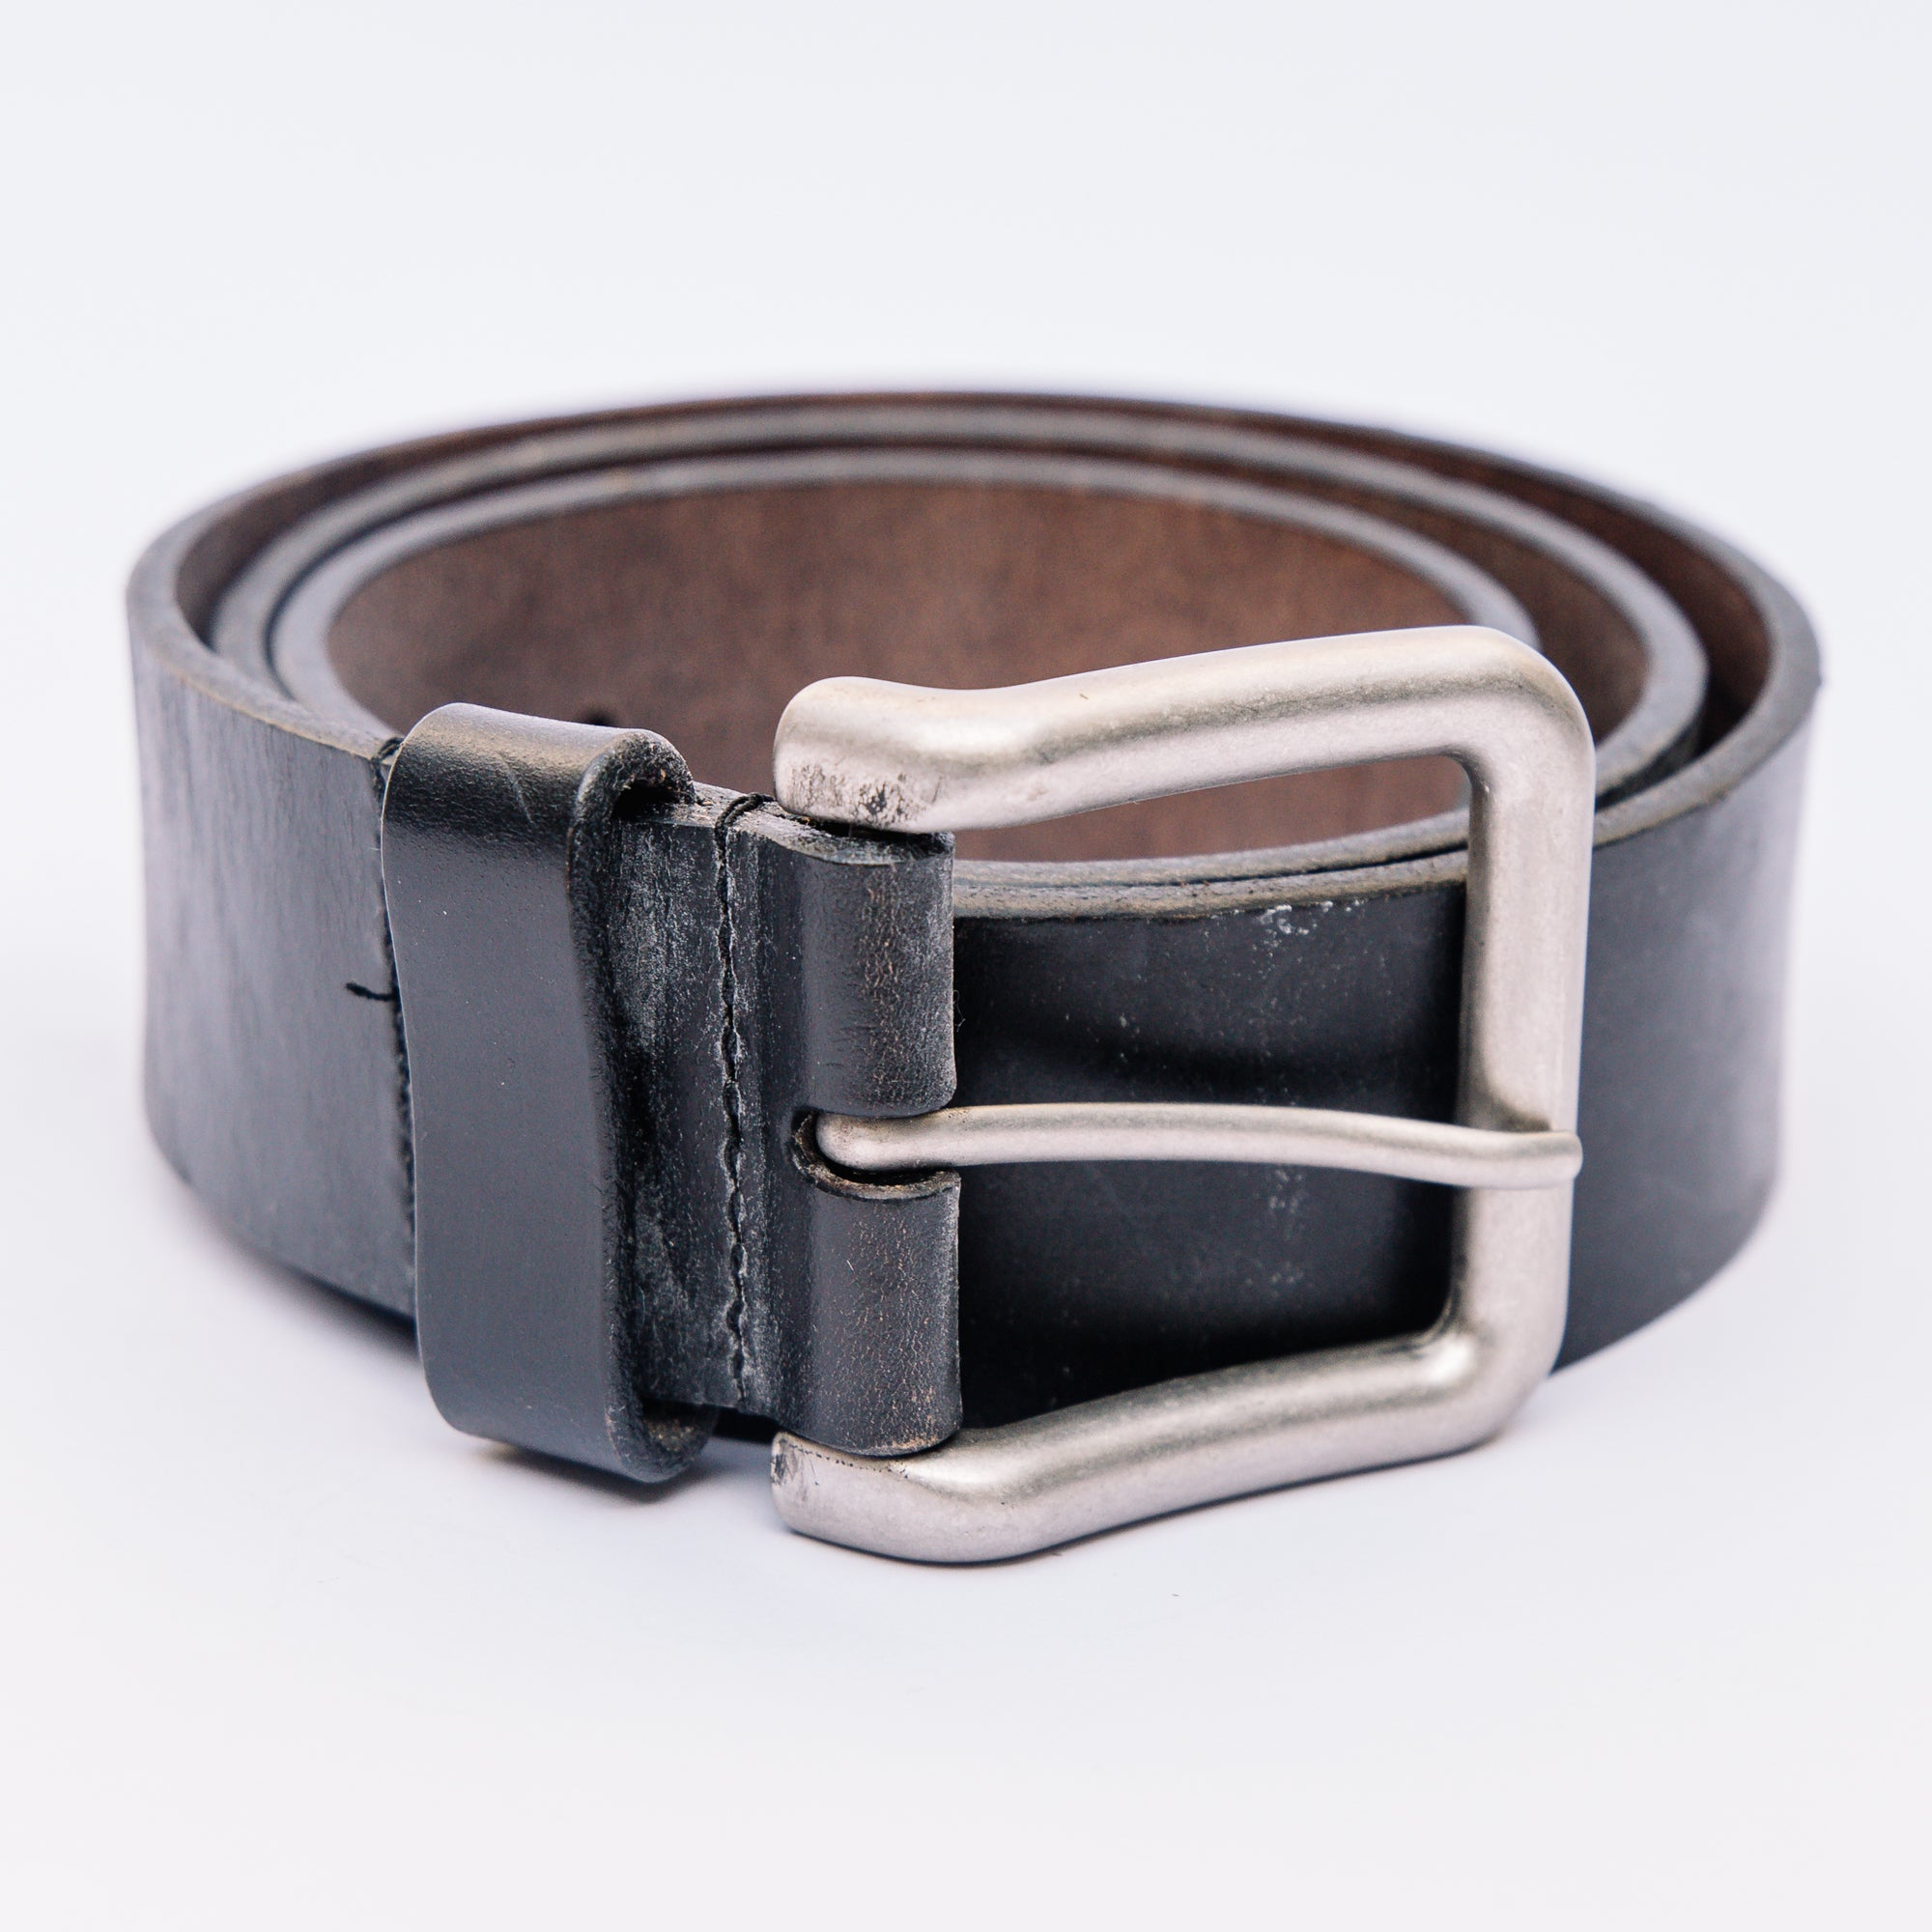 Load image into Gallery viewer, Helm Boots belt- Silver Buckle